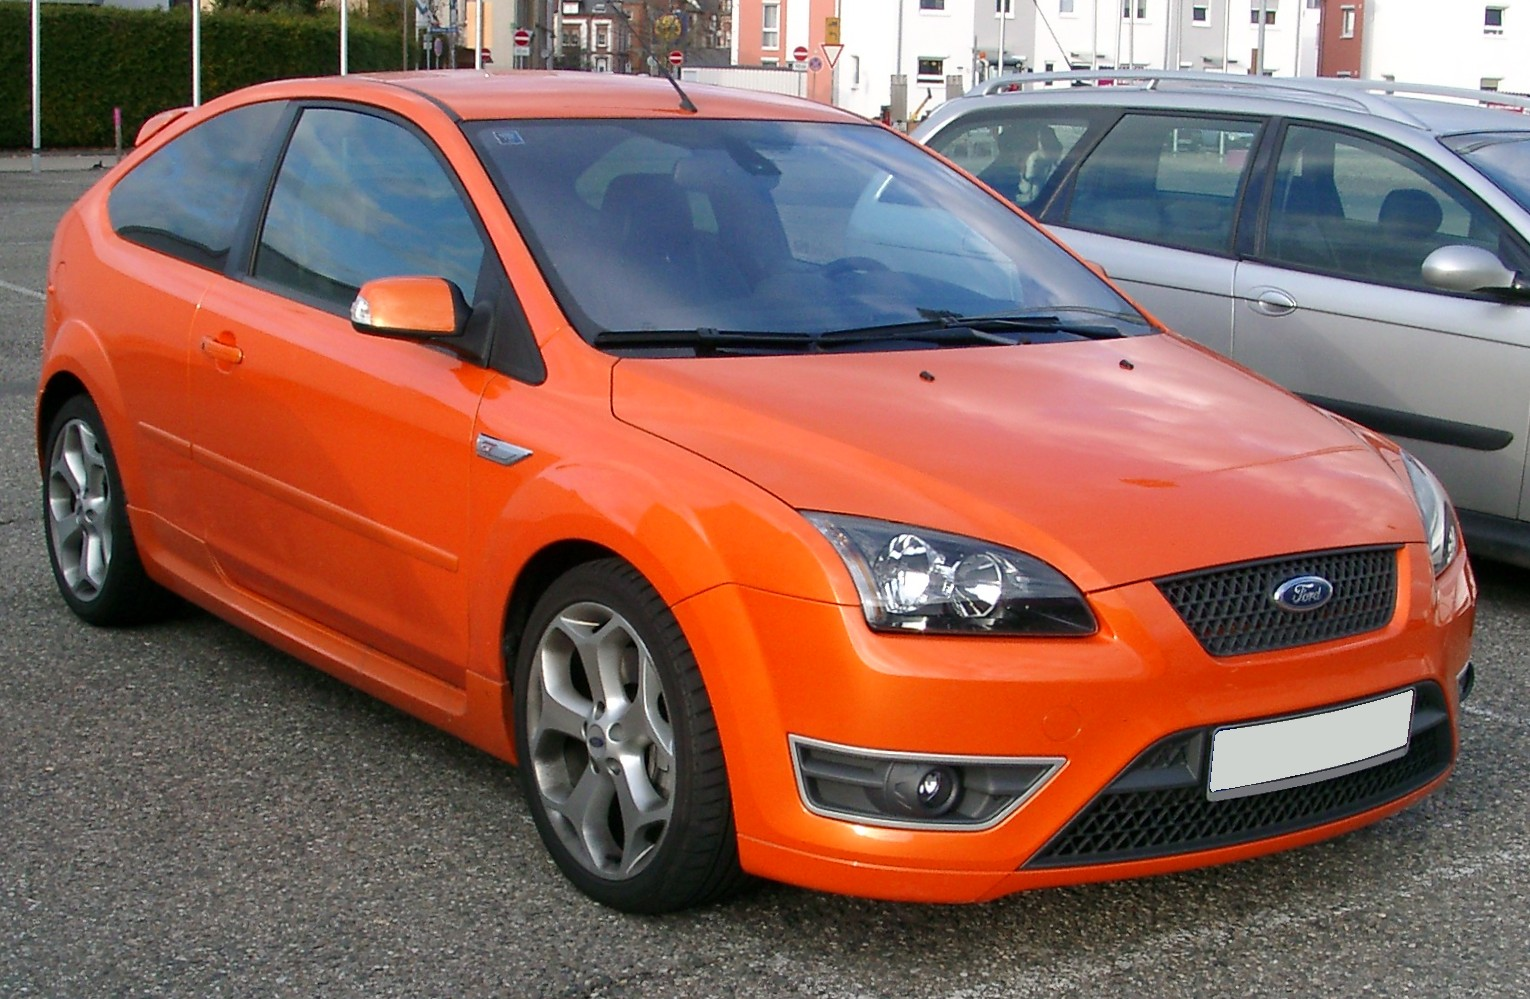 The World Sports Cars Ford Focus St Photo Of - Medium